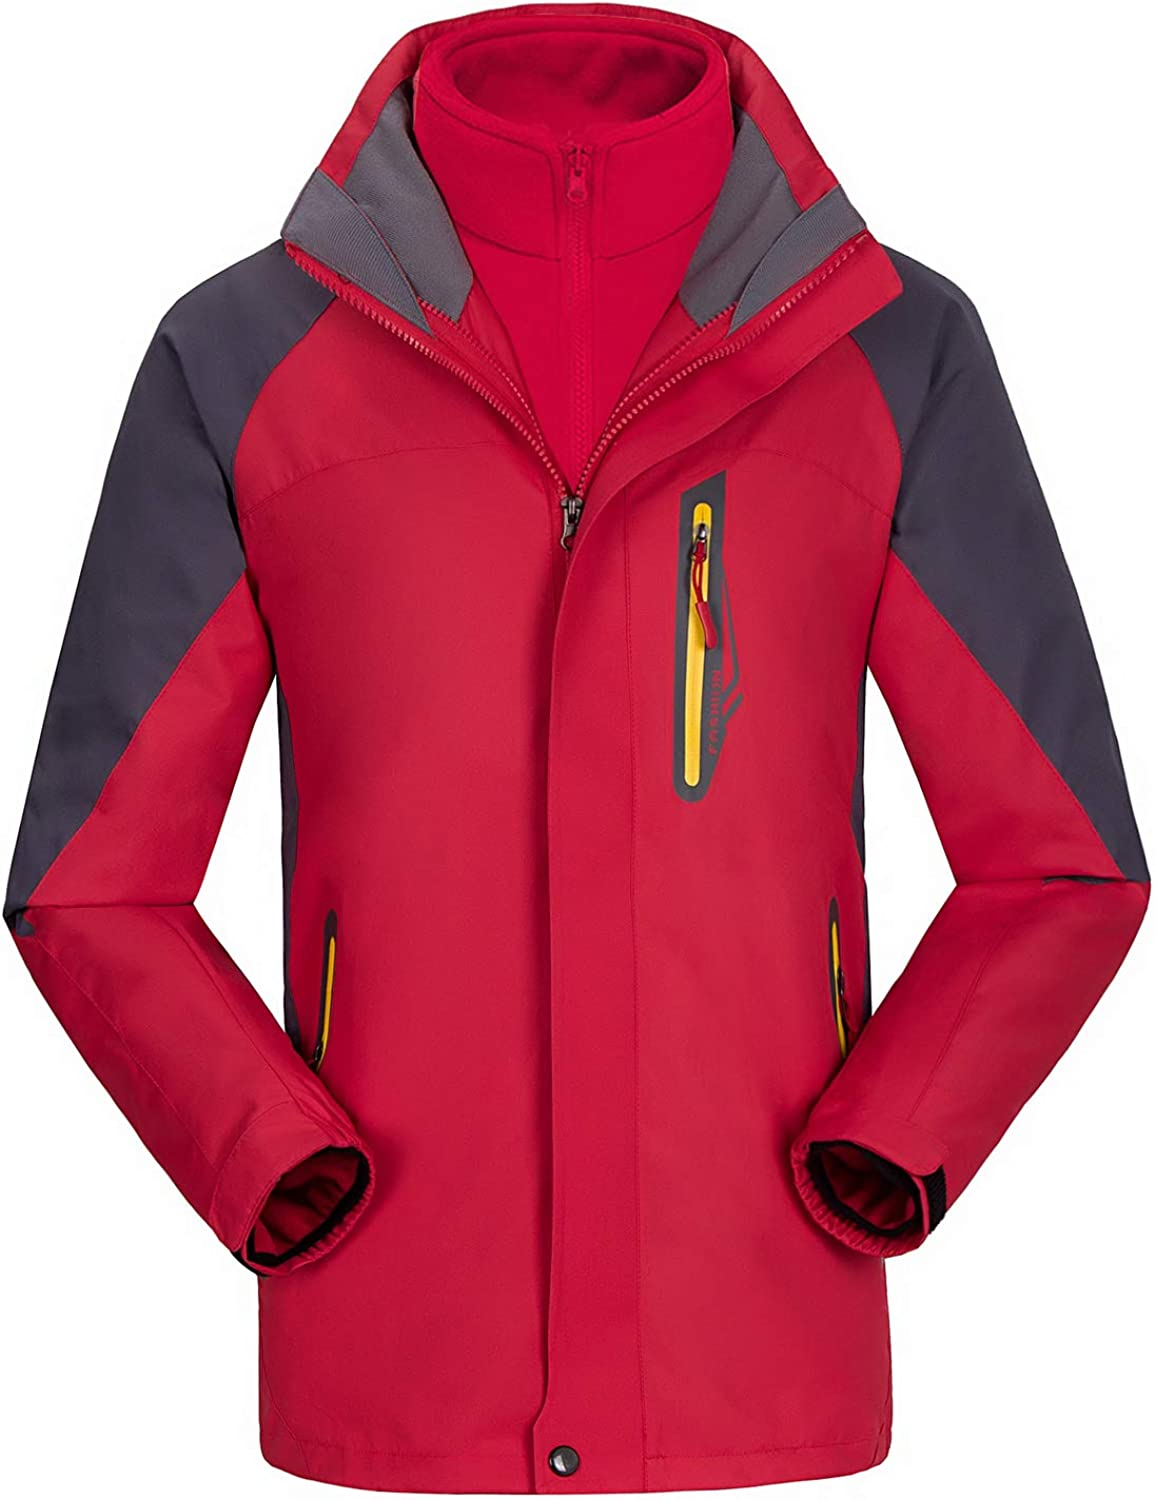 Fleece and Two-Layer Warmth Best Mountain Winter Coat with Windproof Waterproof UINTA OUTERWEAR Mens Ski Jacket